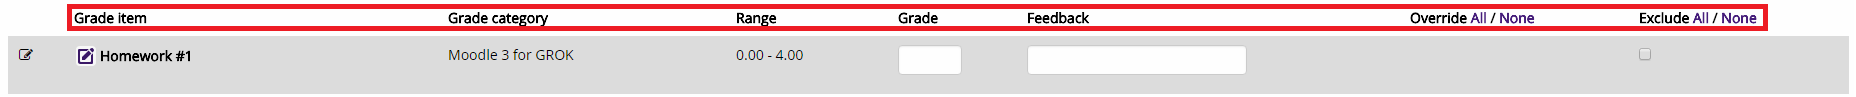 View once the Single view for (student's name) icon is opened